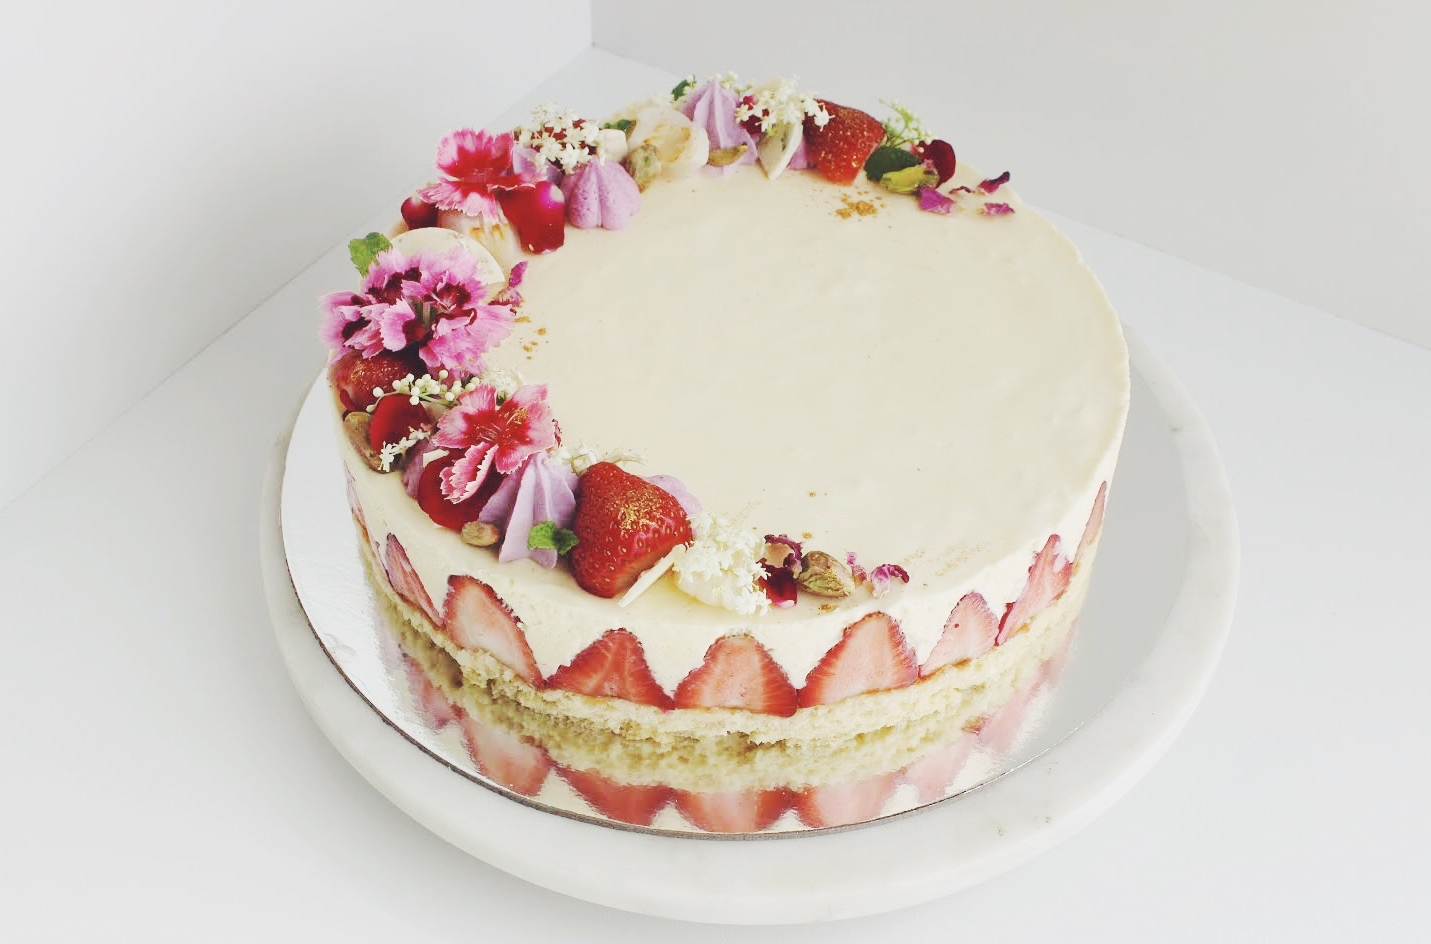 Strawberry Fraisier Cake w/ White Chocolate Mousse and Raspberry Jelly